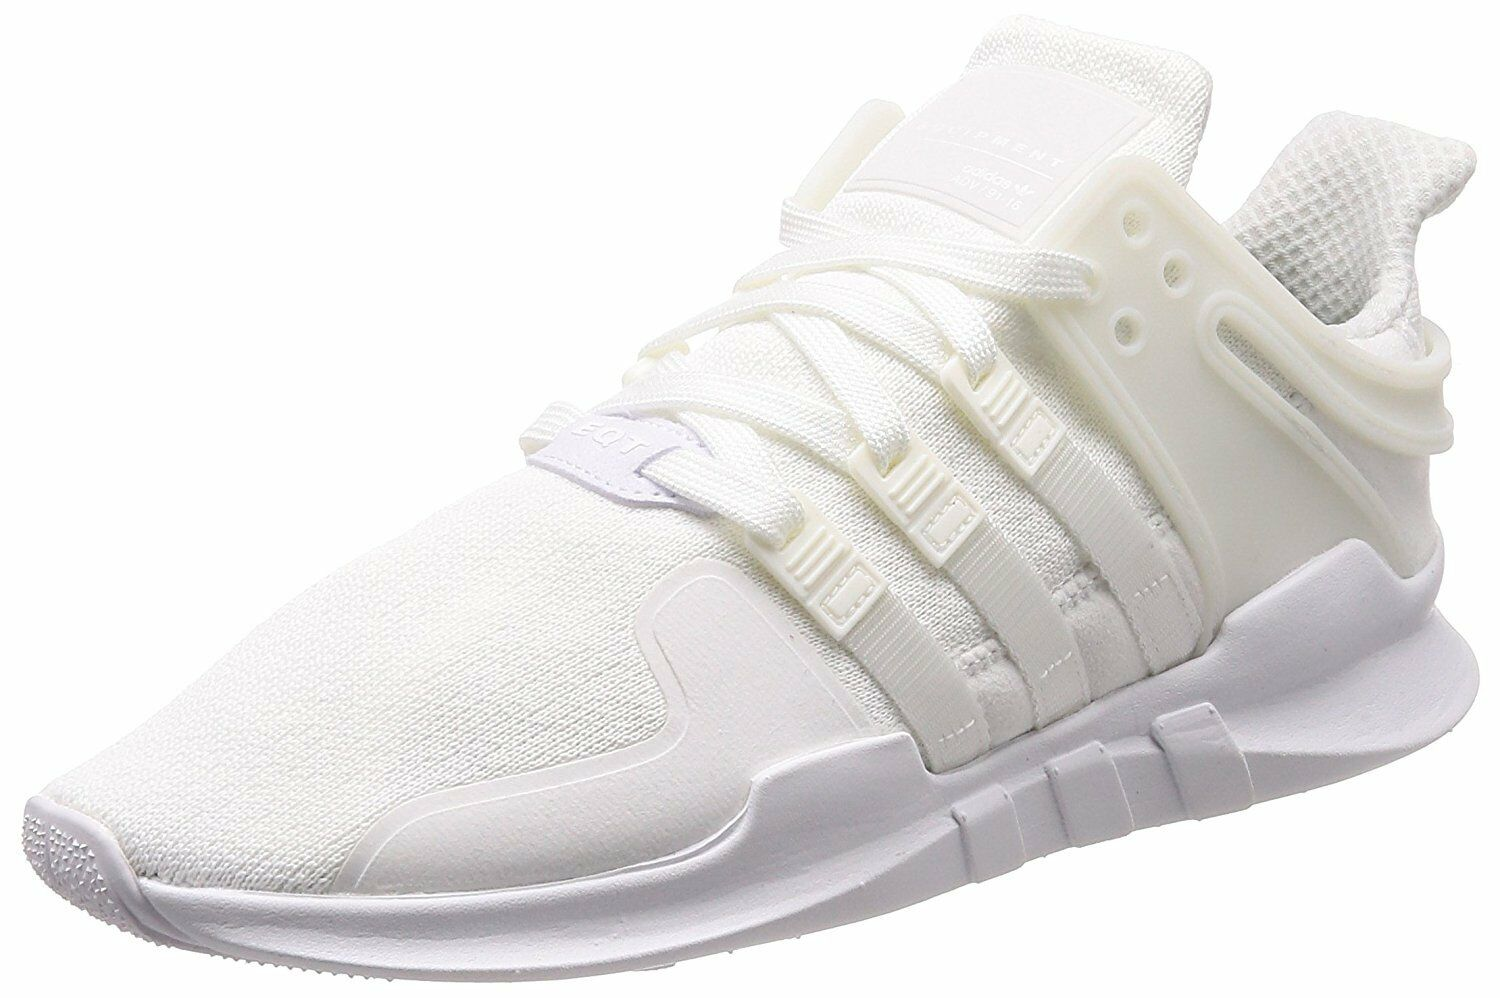 ADIDAS MENS EQT SUPPORT ADV RUNNING SHOES #CP9558